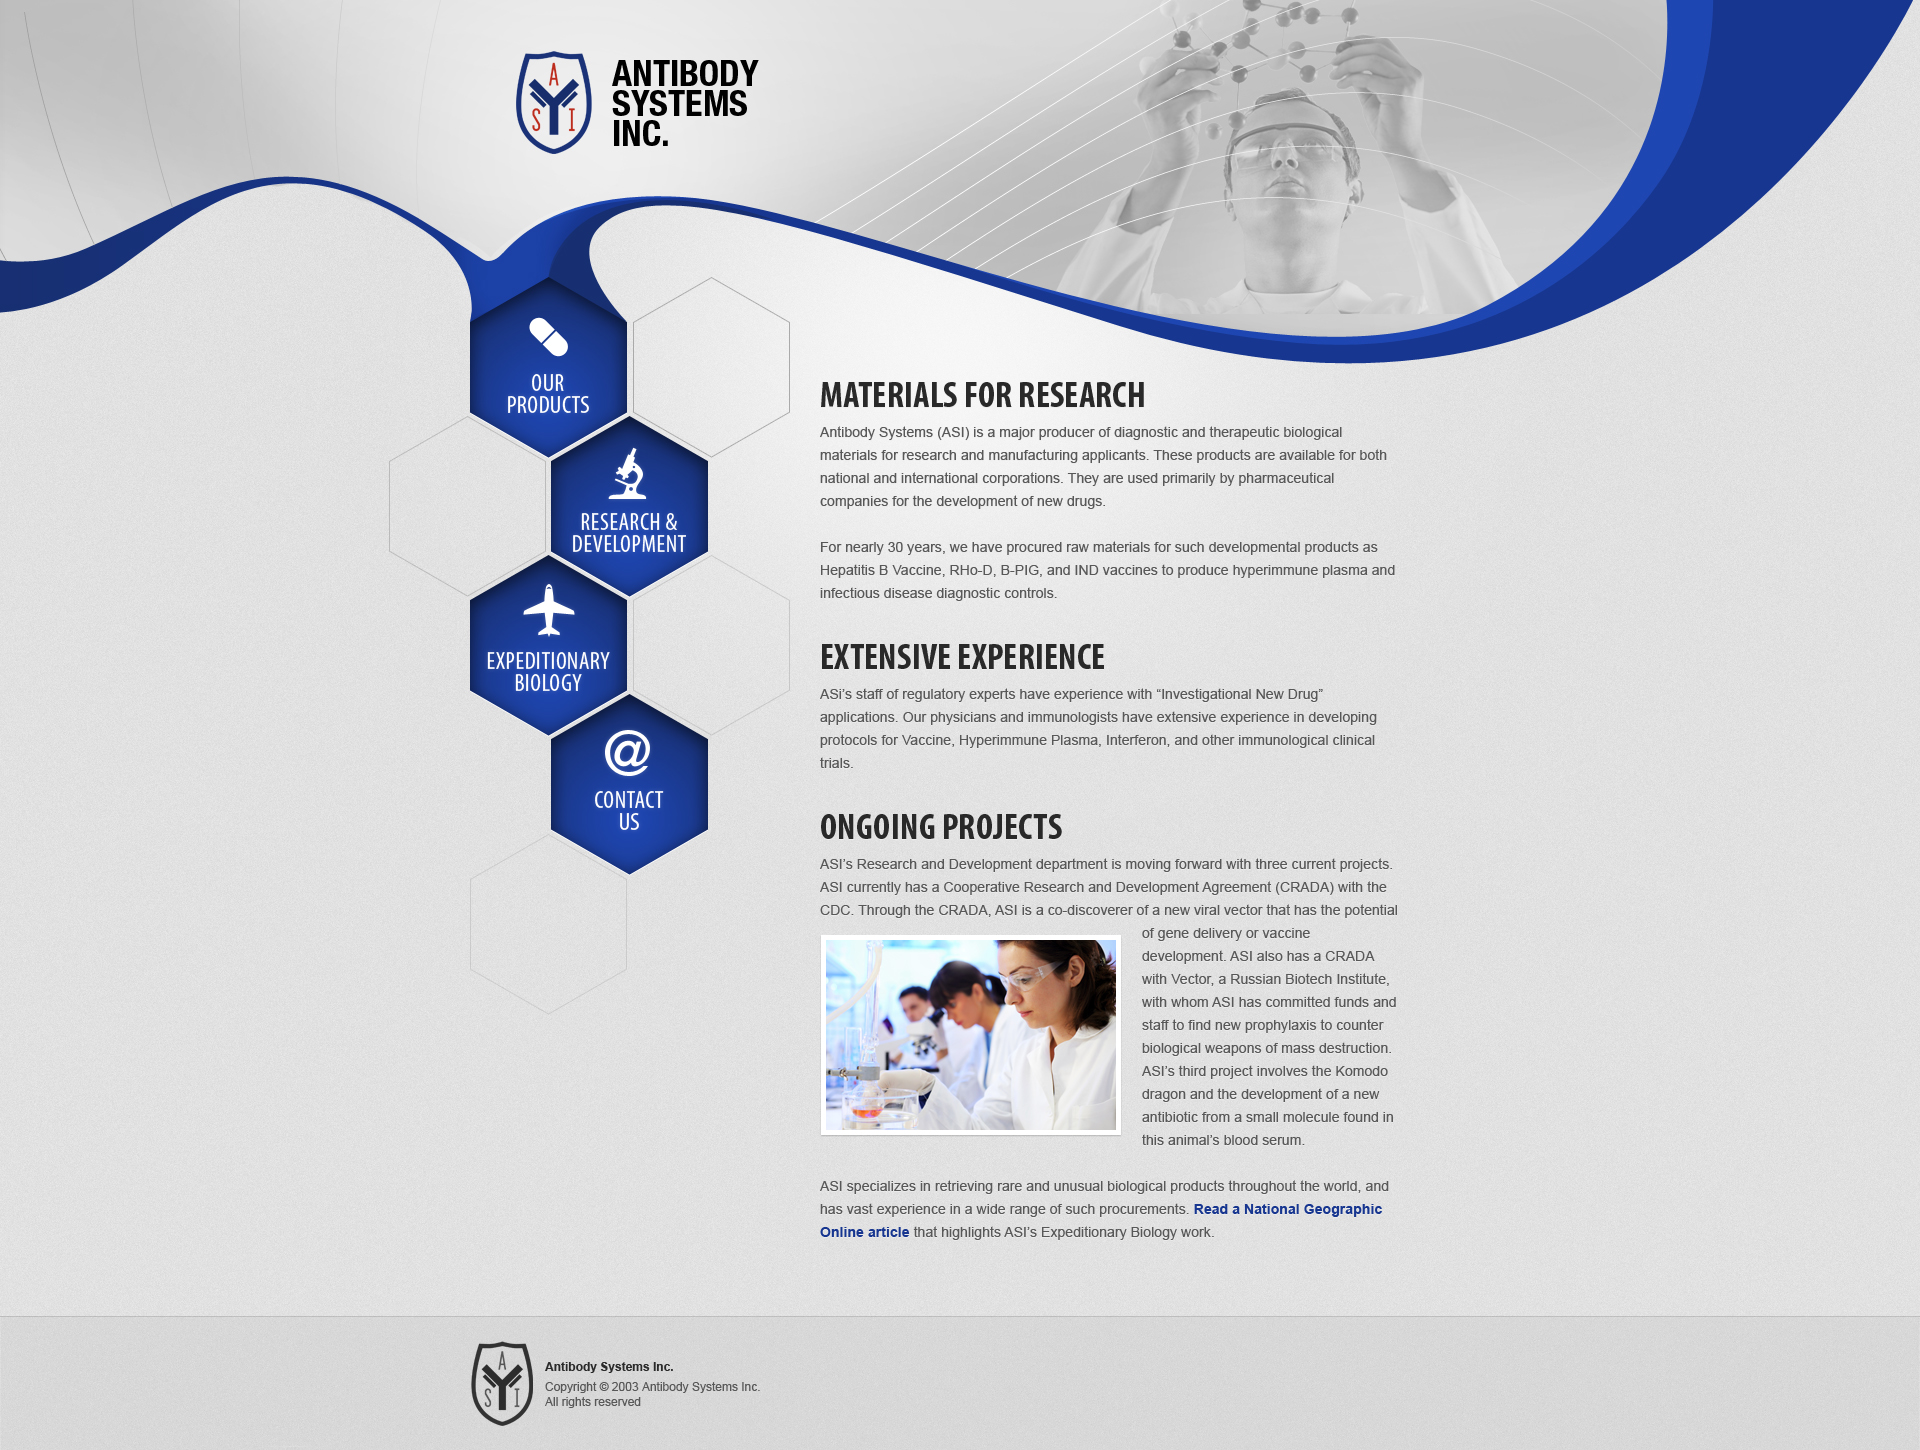 Antibody Systems site design plan by floydworx